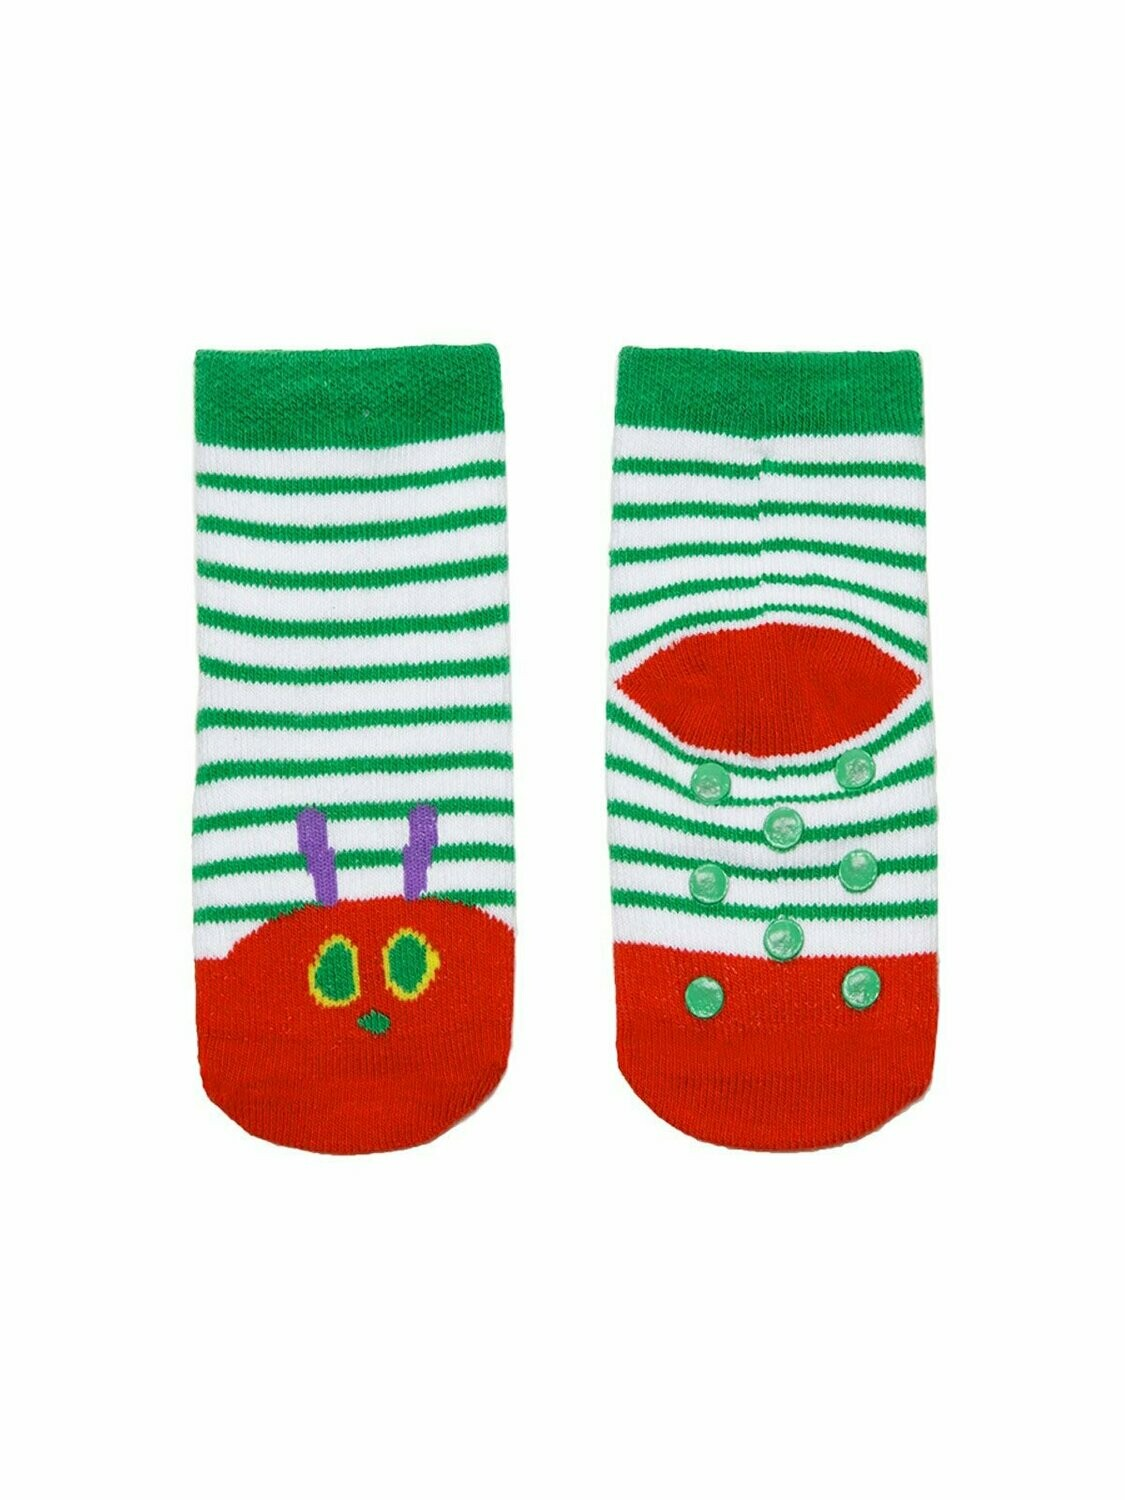 The Very Hungry Caterpillar Toddler Sock 4-pack (12-24 Mos.)